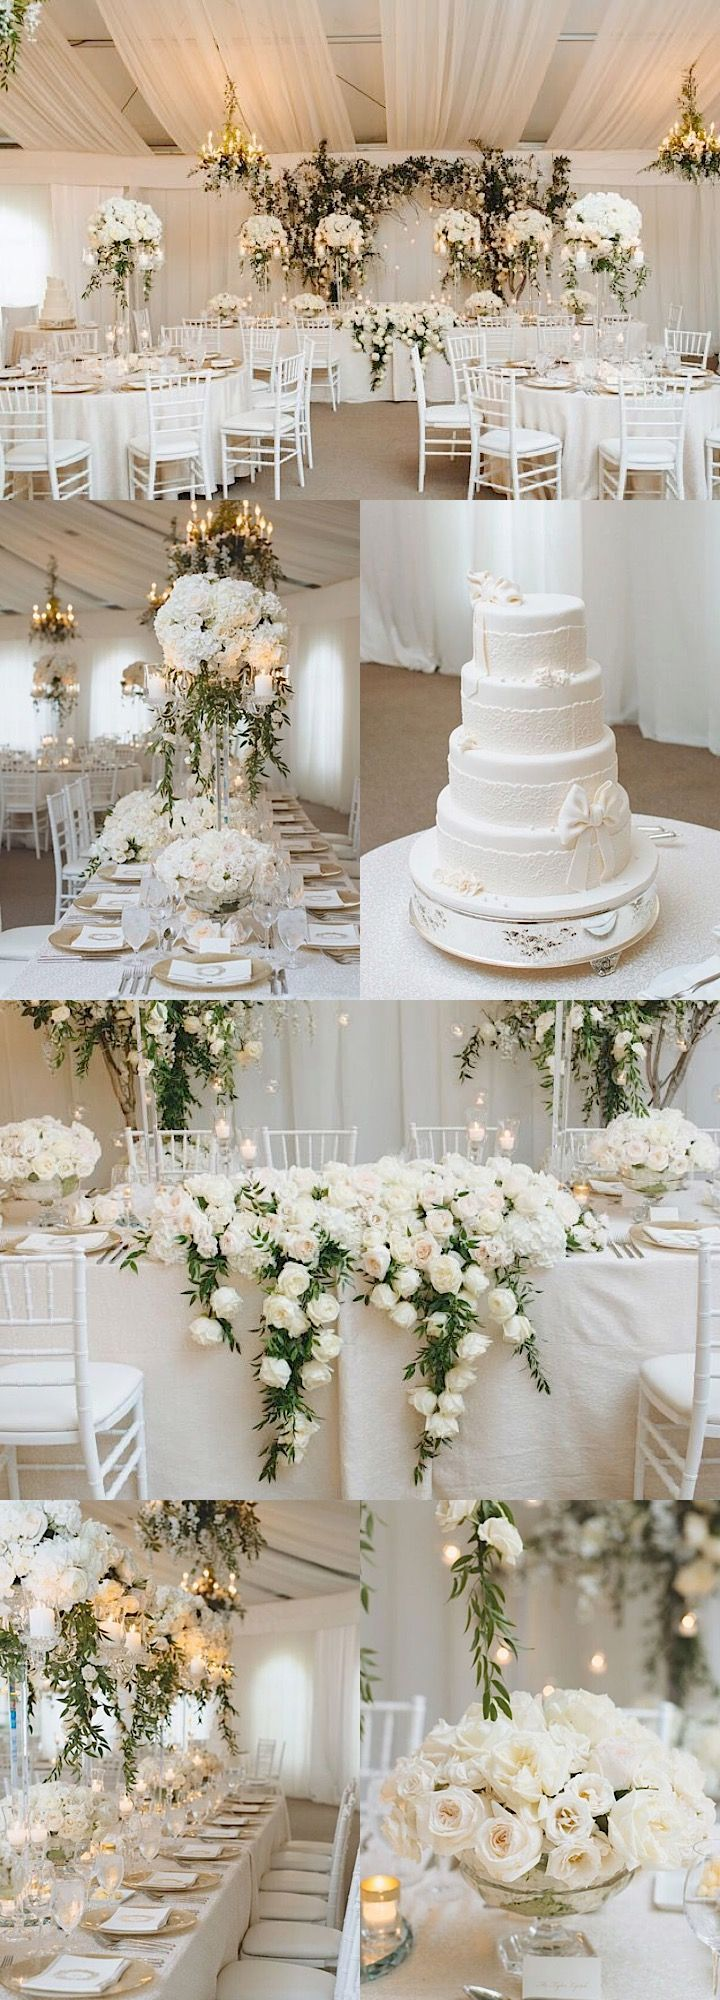 100 best bride groom table set up images on pinterest marriage elegant white wedding reception idea photo mango studios junglespirit Choice Image